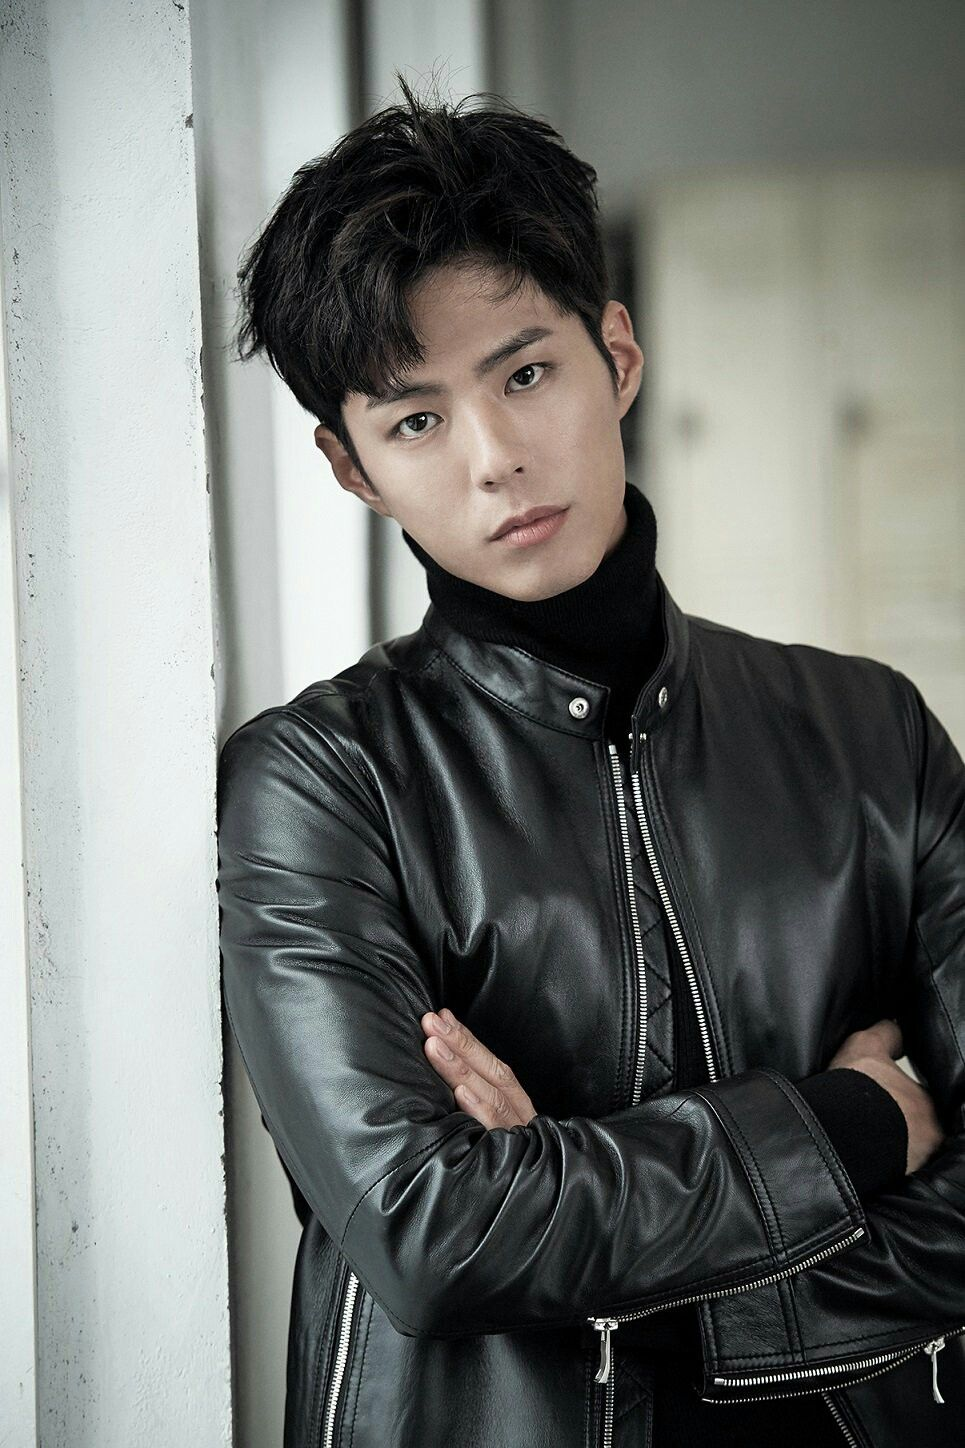 Park Bo Gum looking fuckin' sexy in that black leather jacket.